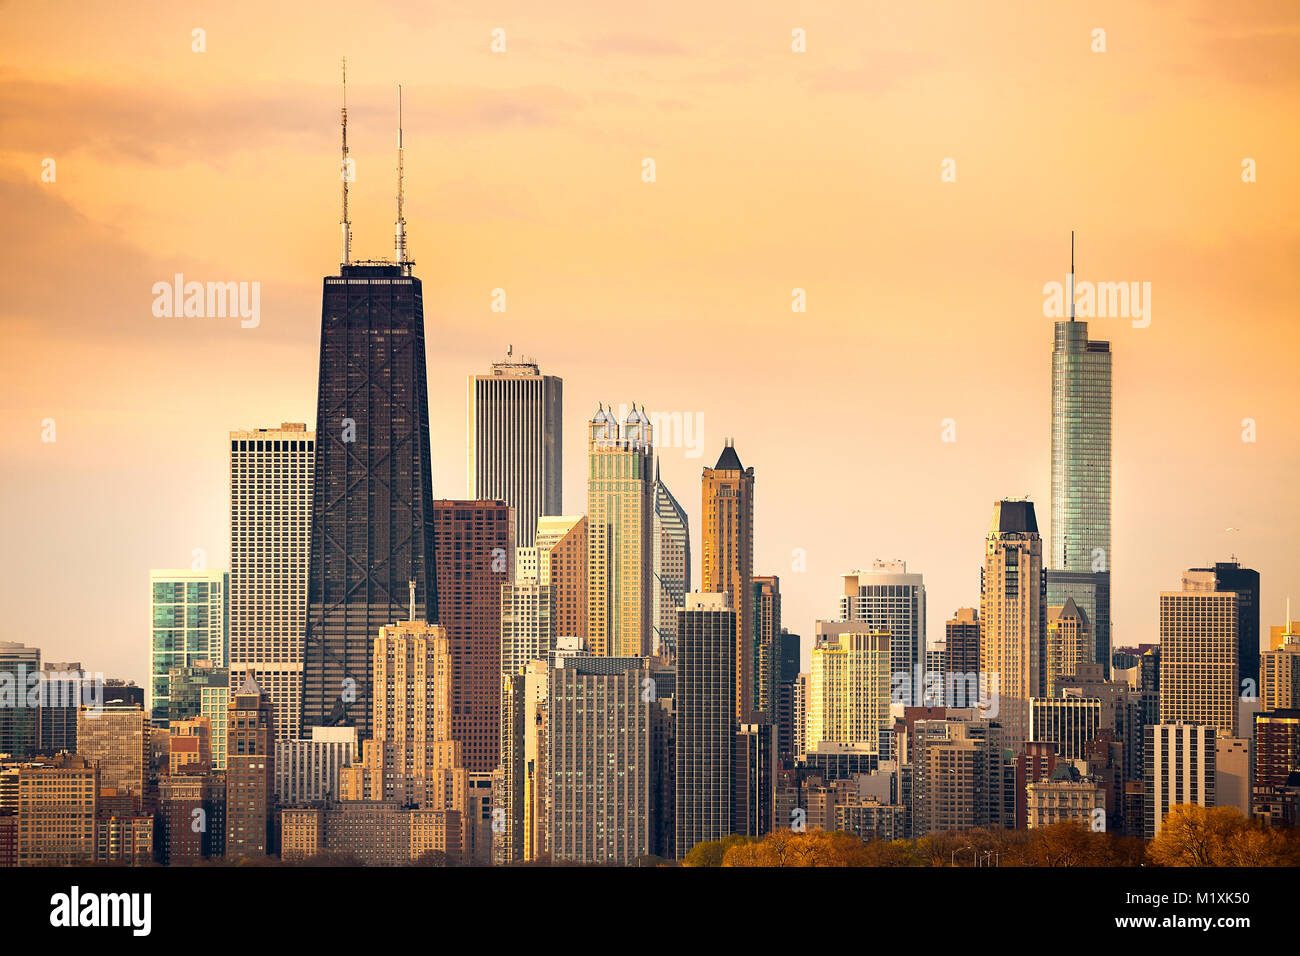 Downtown city skyline of Chicago, Illinois - Stock Image